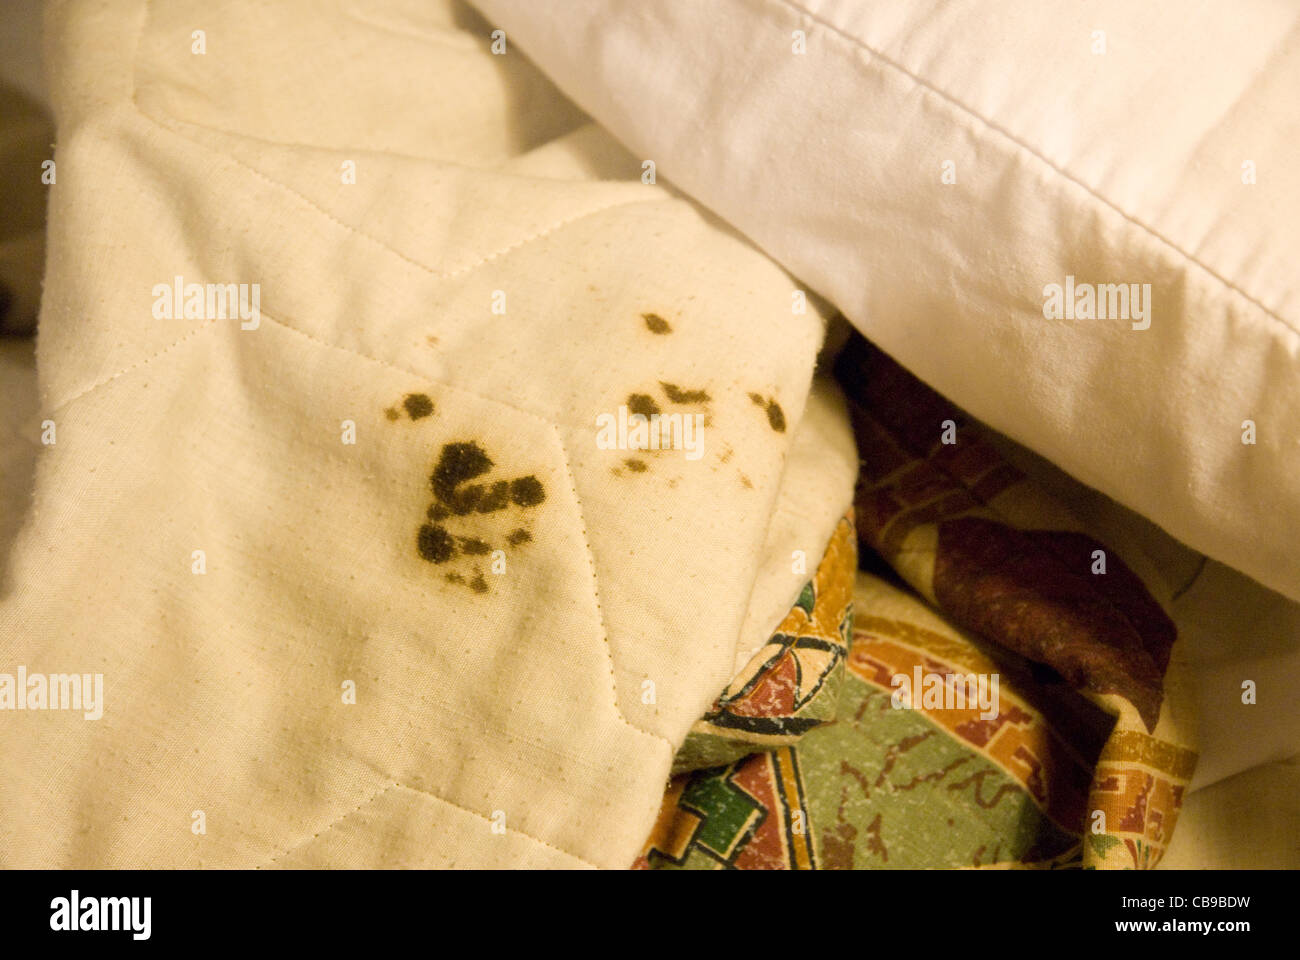 The problem of cleanliness in hotel rooms is evidenced by dried blood stains on the comforter in a Texas motel room - Stock Image